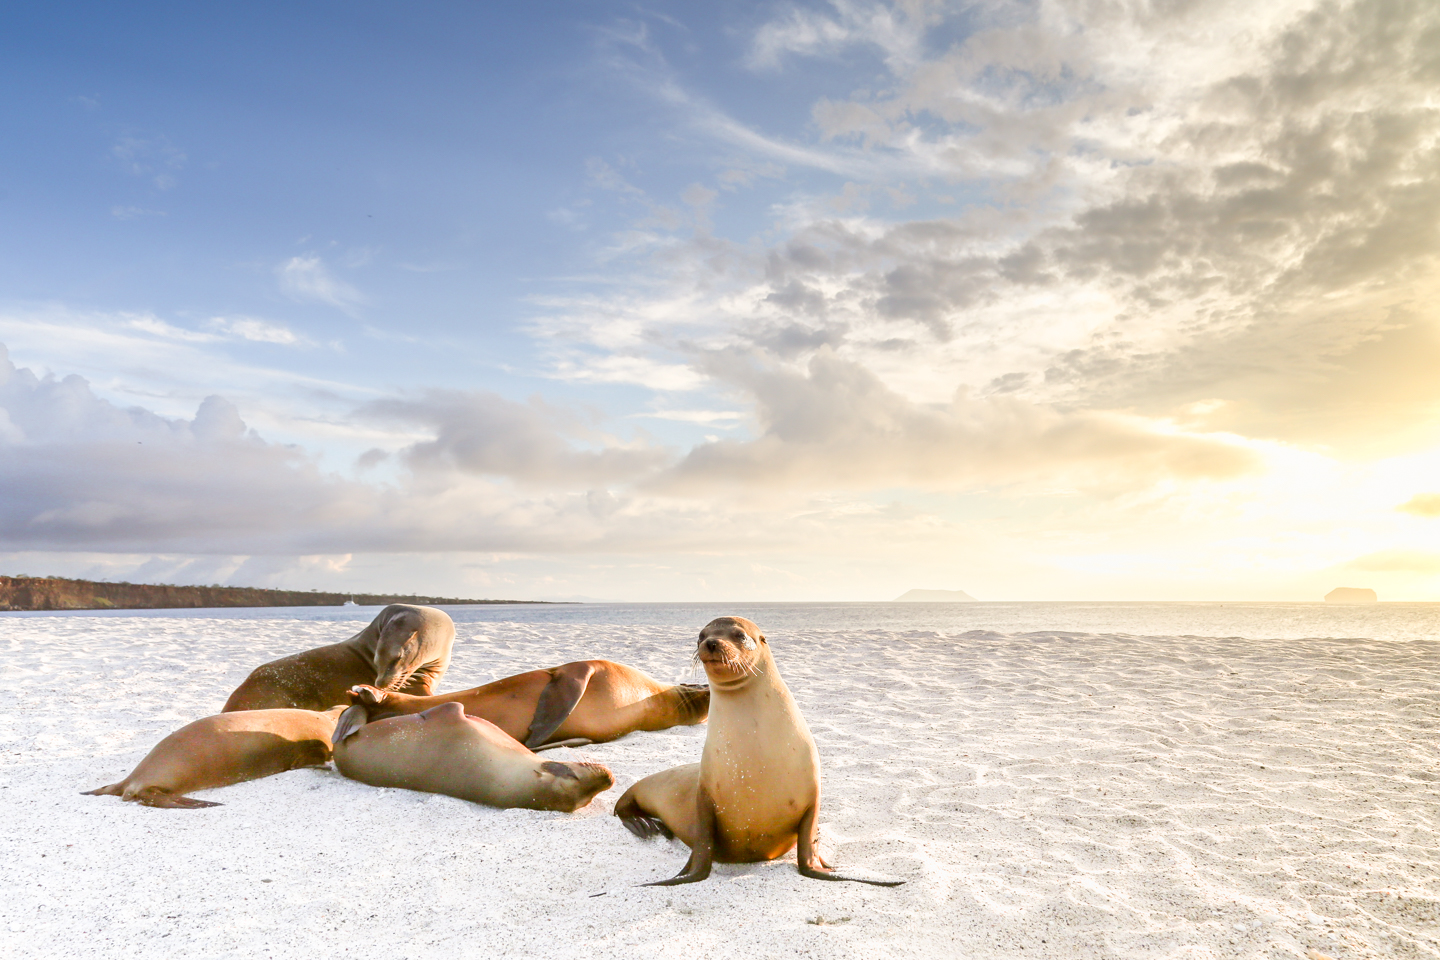 Postcards from the Galapagos Islands